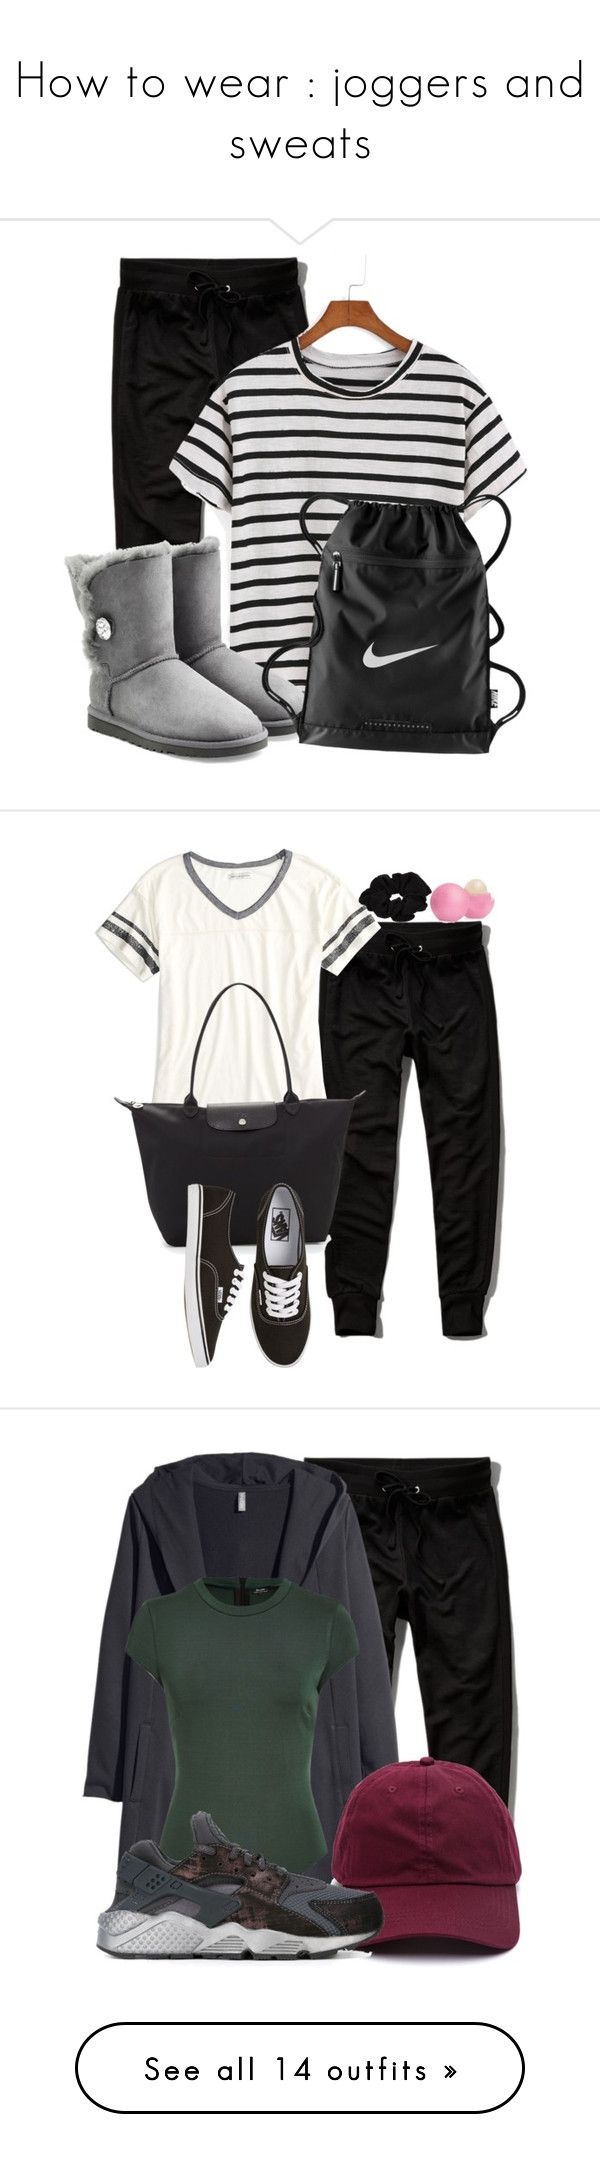 """How to wear : joggers and sweats"" by maddophelia ❤ liked on Polyvore featuring Abercrombie & Fitch, UGG Australia, NIKE, women's clothing, women, female, woman, misses, juniors and American Eagle Outfitters"